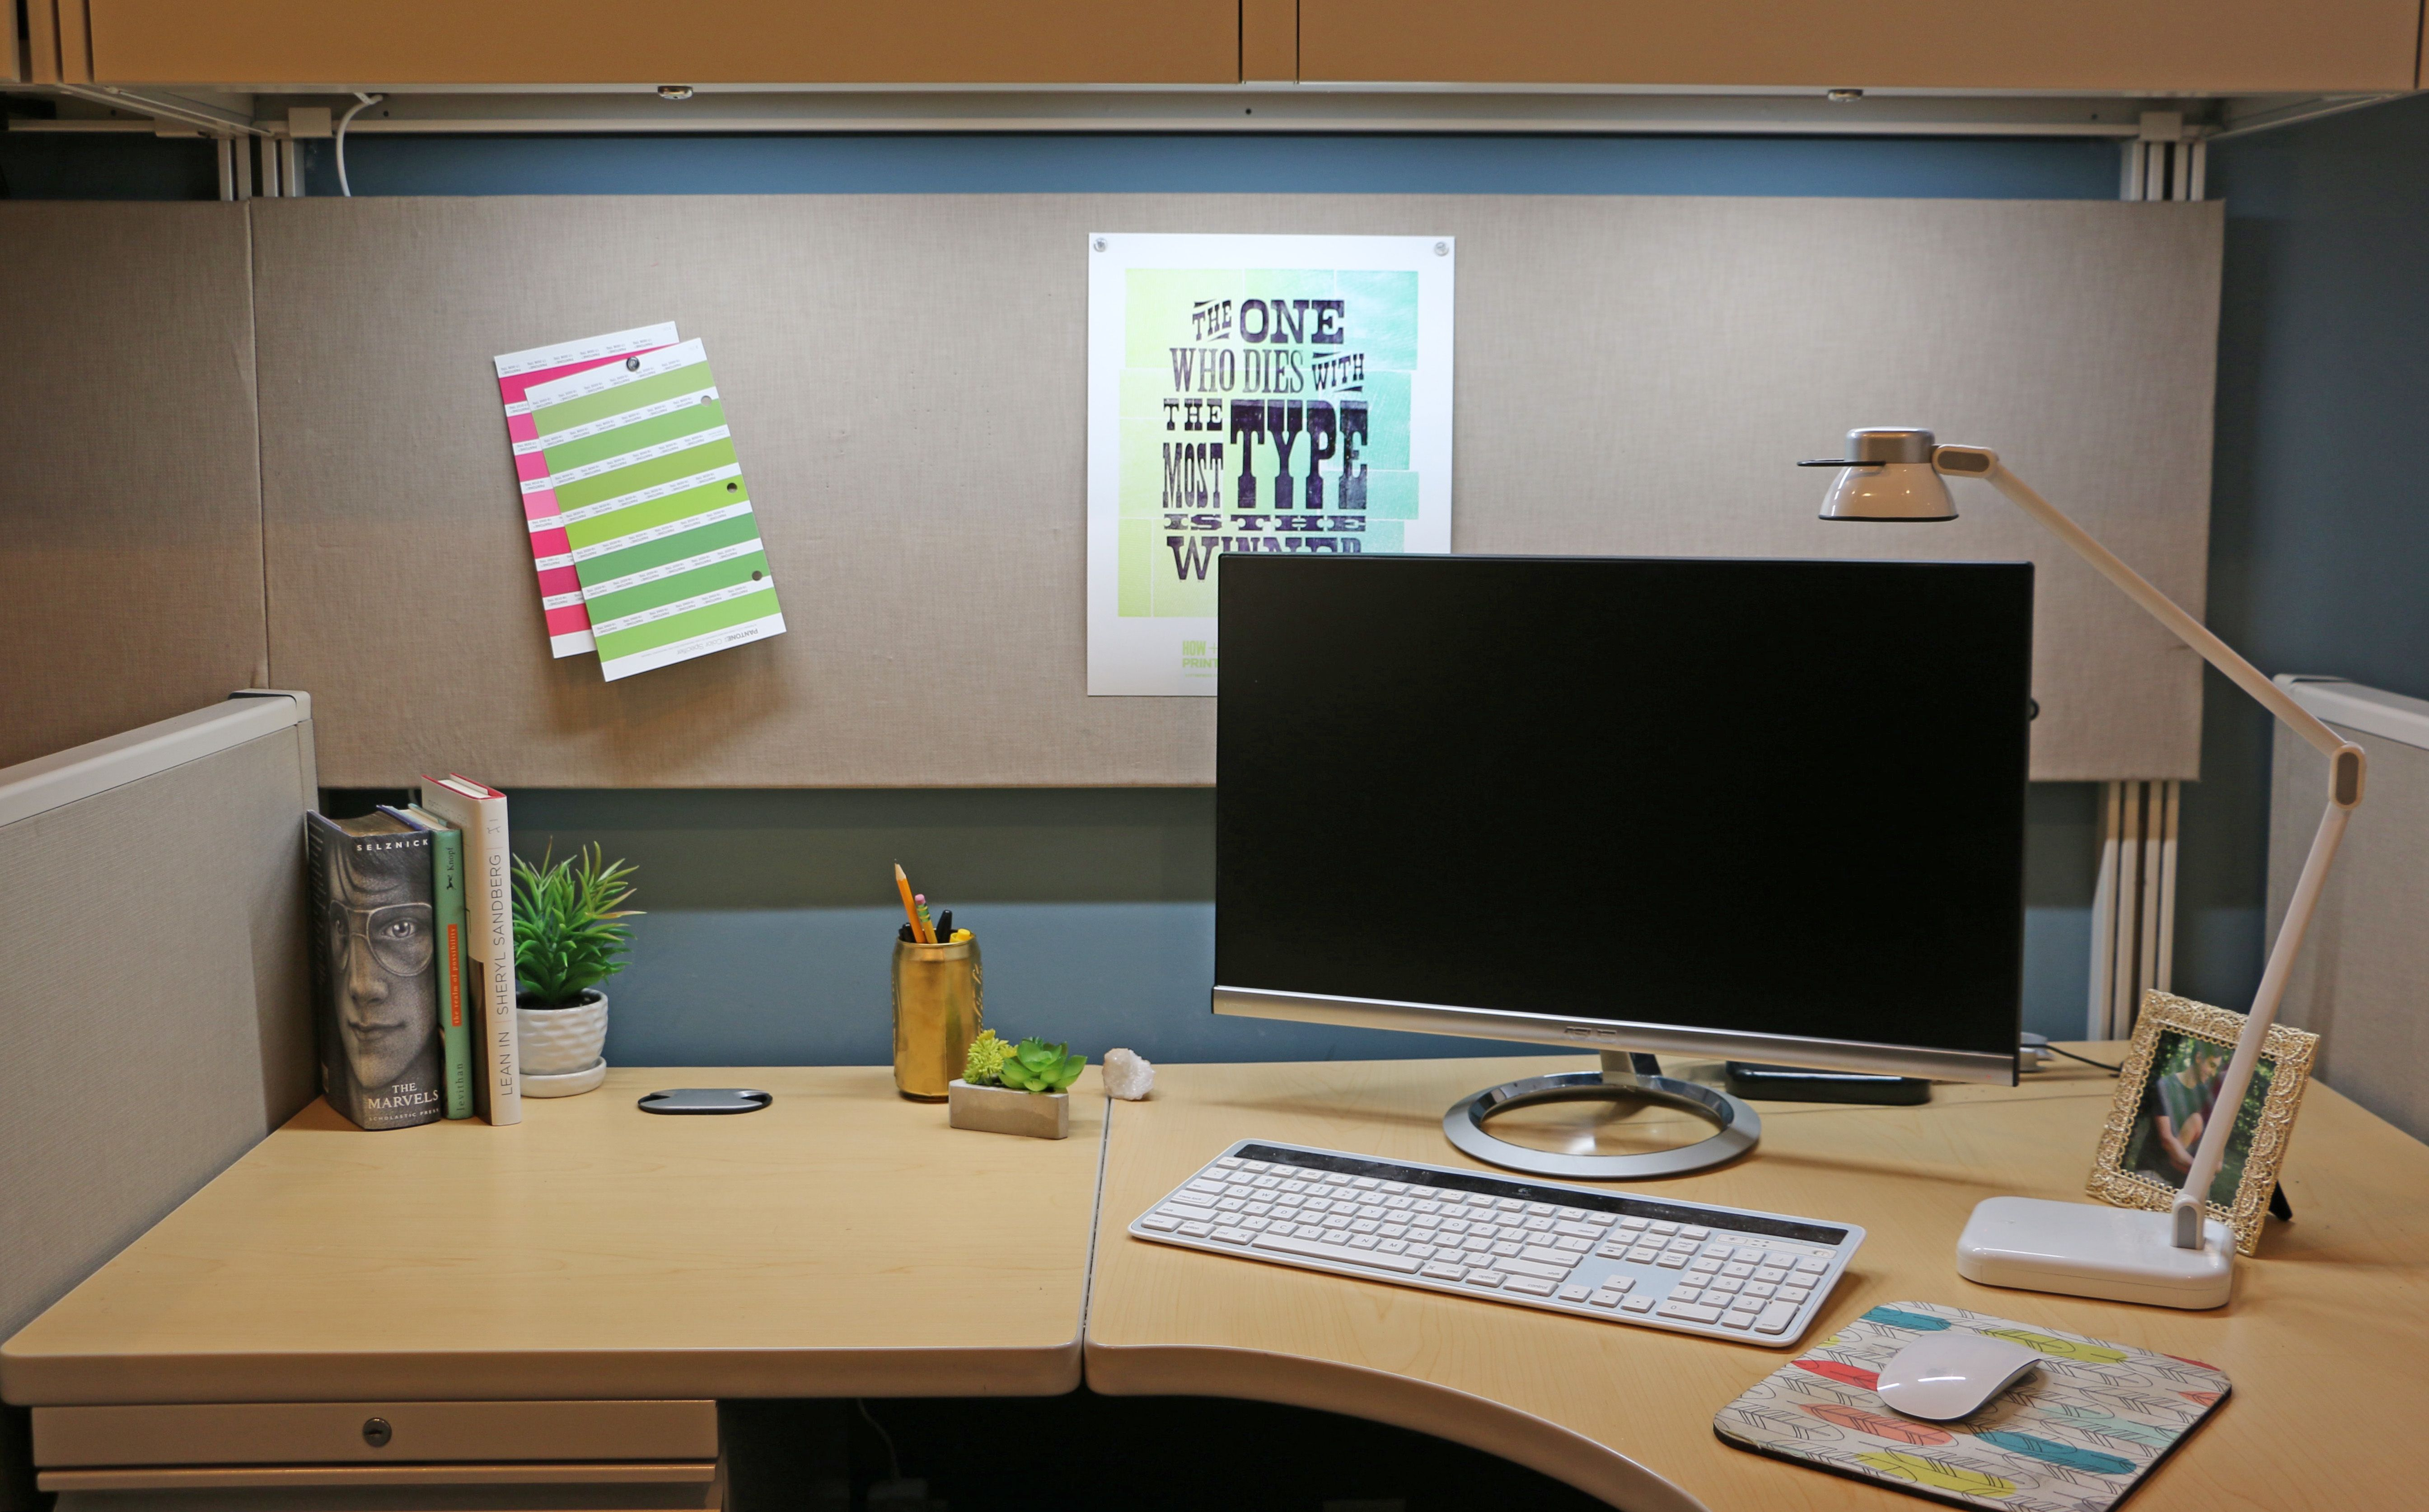 office cubicle lighting. 2-Bar LED Under Cabinet Lighting Kit, Natural Daylight, 12\u201d Office Cubicle G